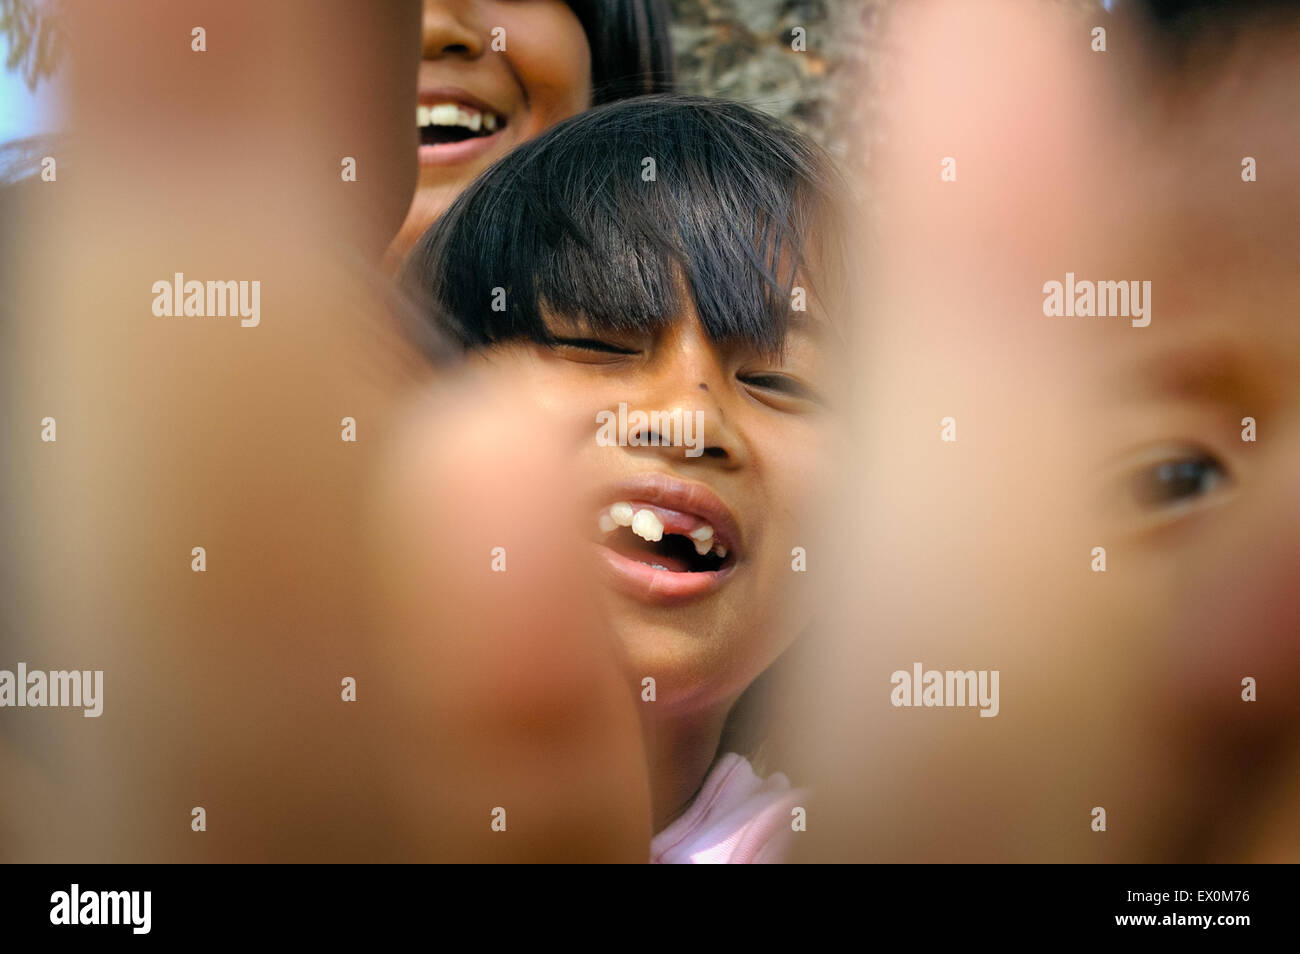 Street children scramble forward to the front of the lens when about to be photographed in Pondok Kelapa Cemetery, - Stock Image